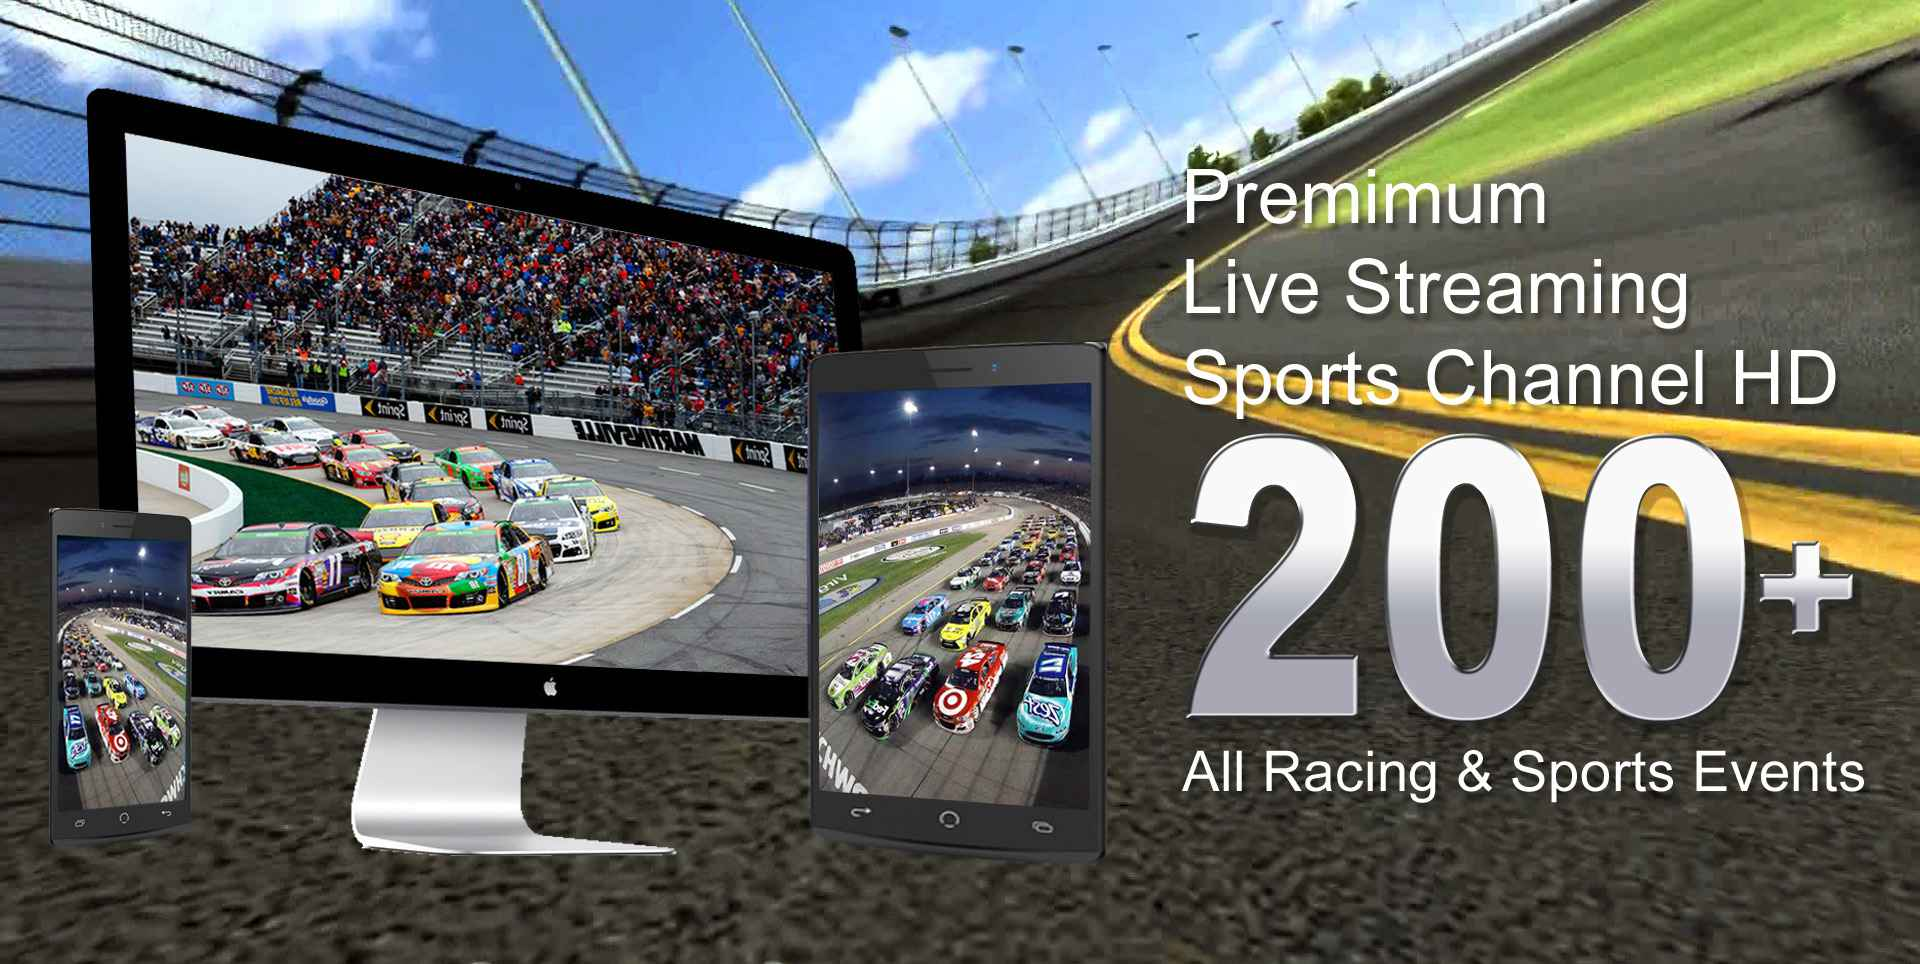 2018 My Bariatric Solutions 300 Xfinity Series Live